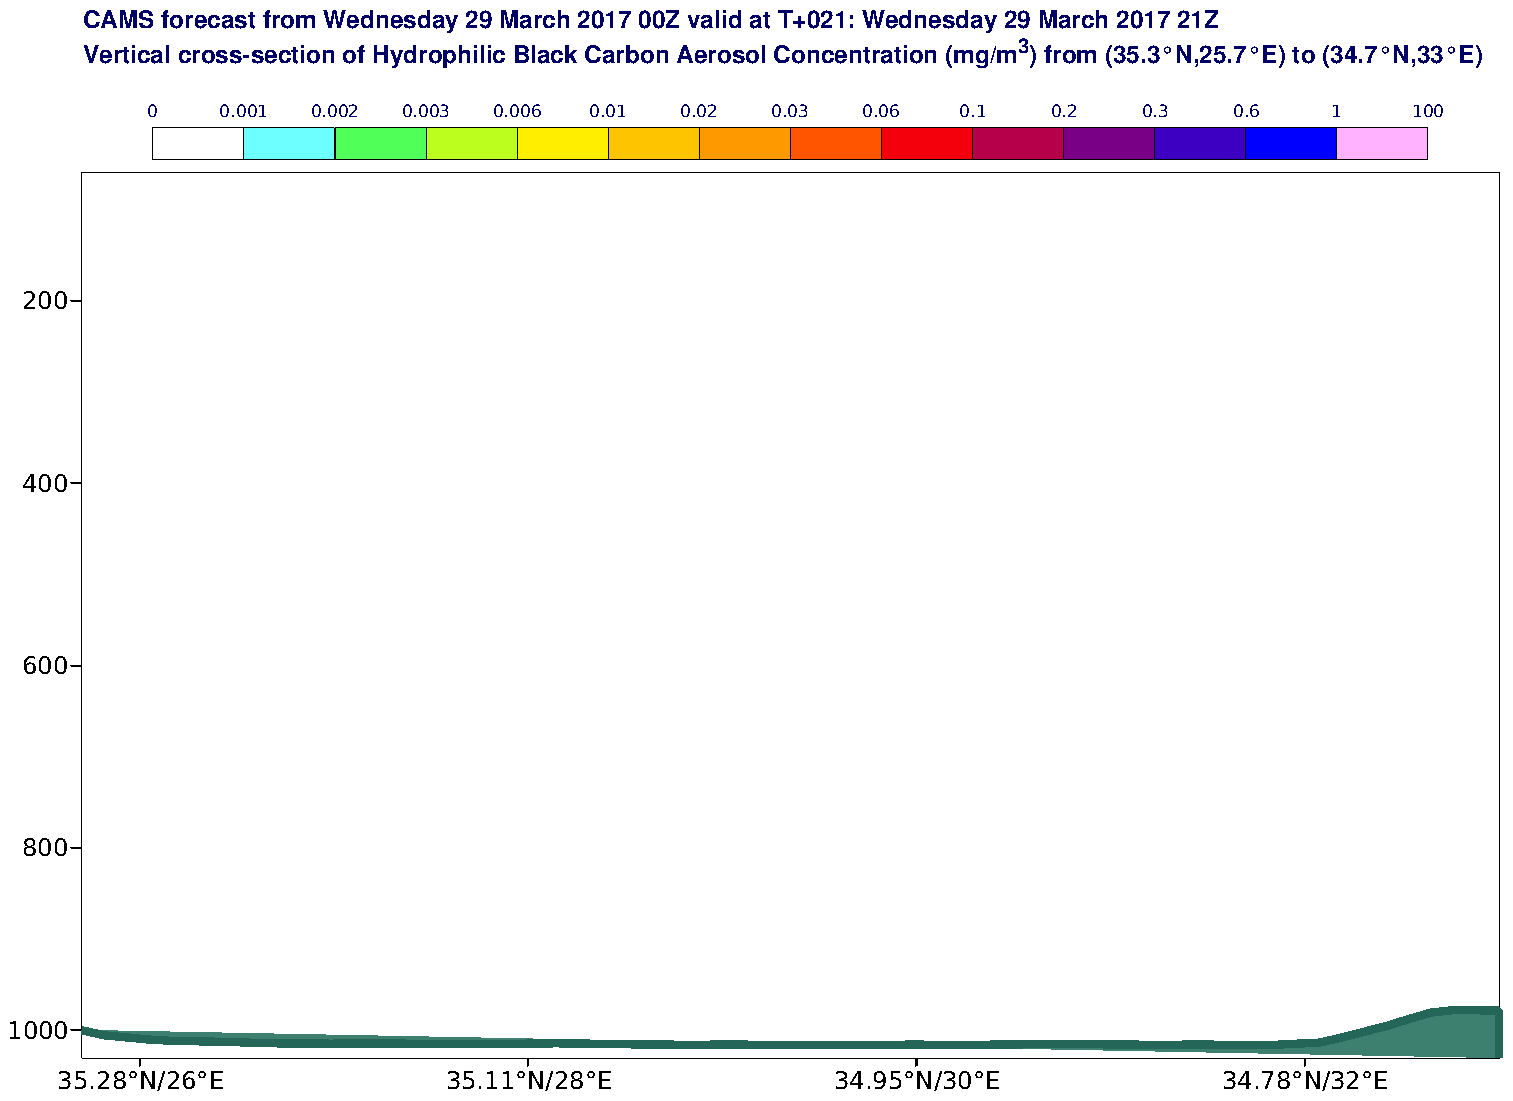 Vertical cross-section of Hydrophilic Black Carbon Aerosol Concentration (mg/m3) valid at T21 - 2017-03-29 21:00